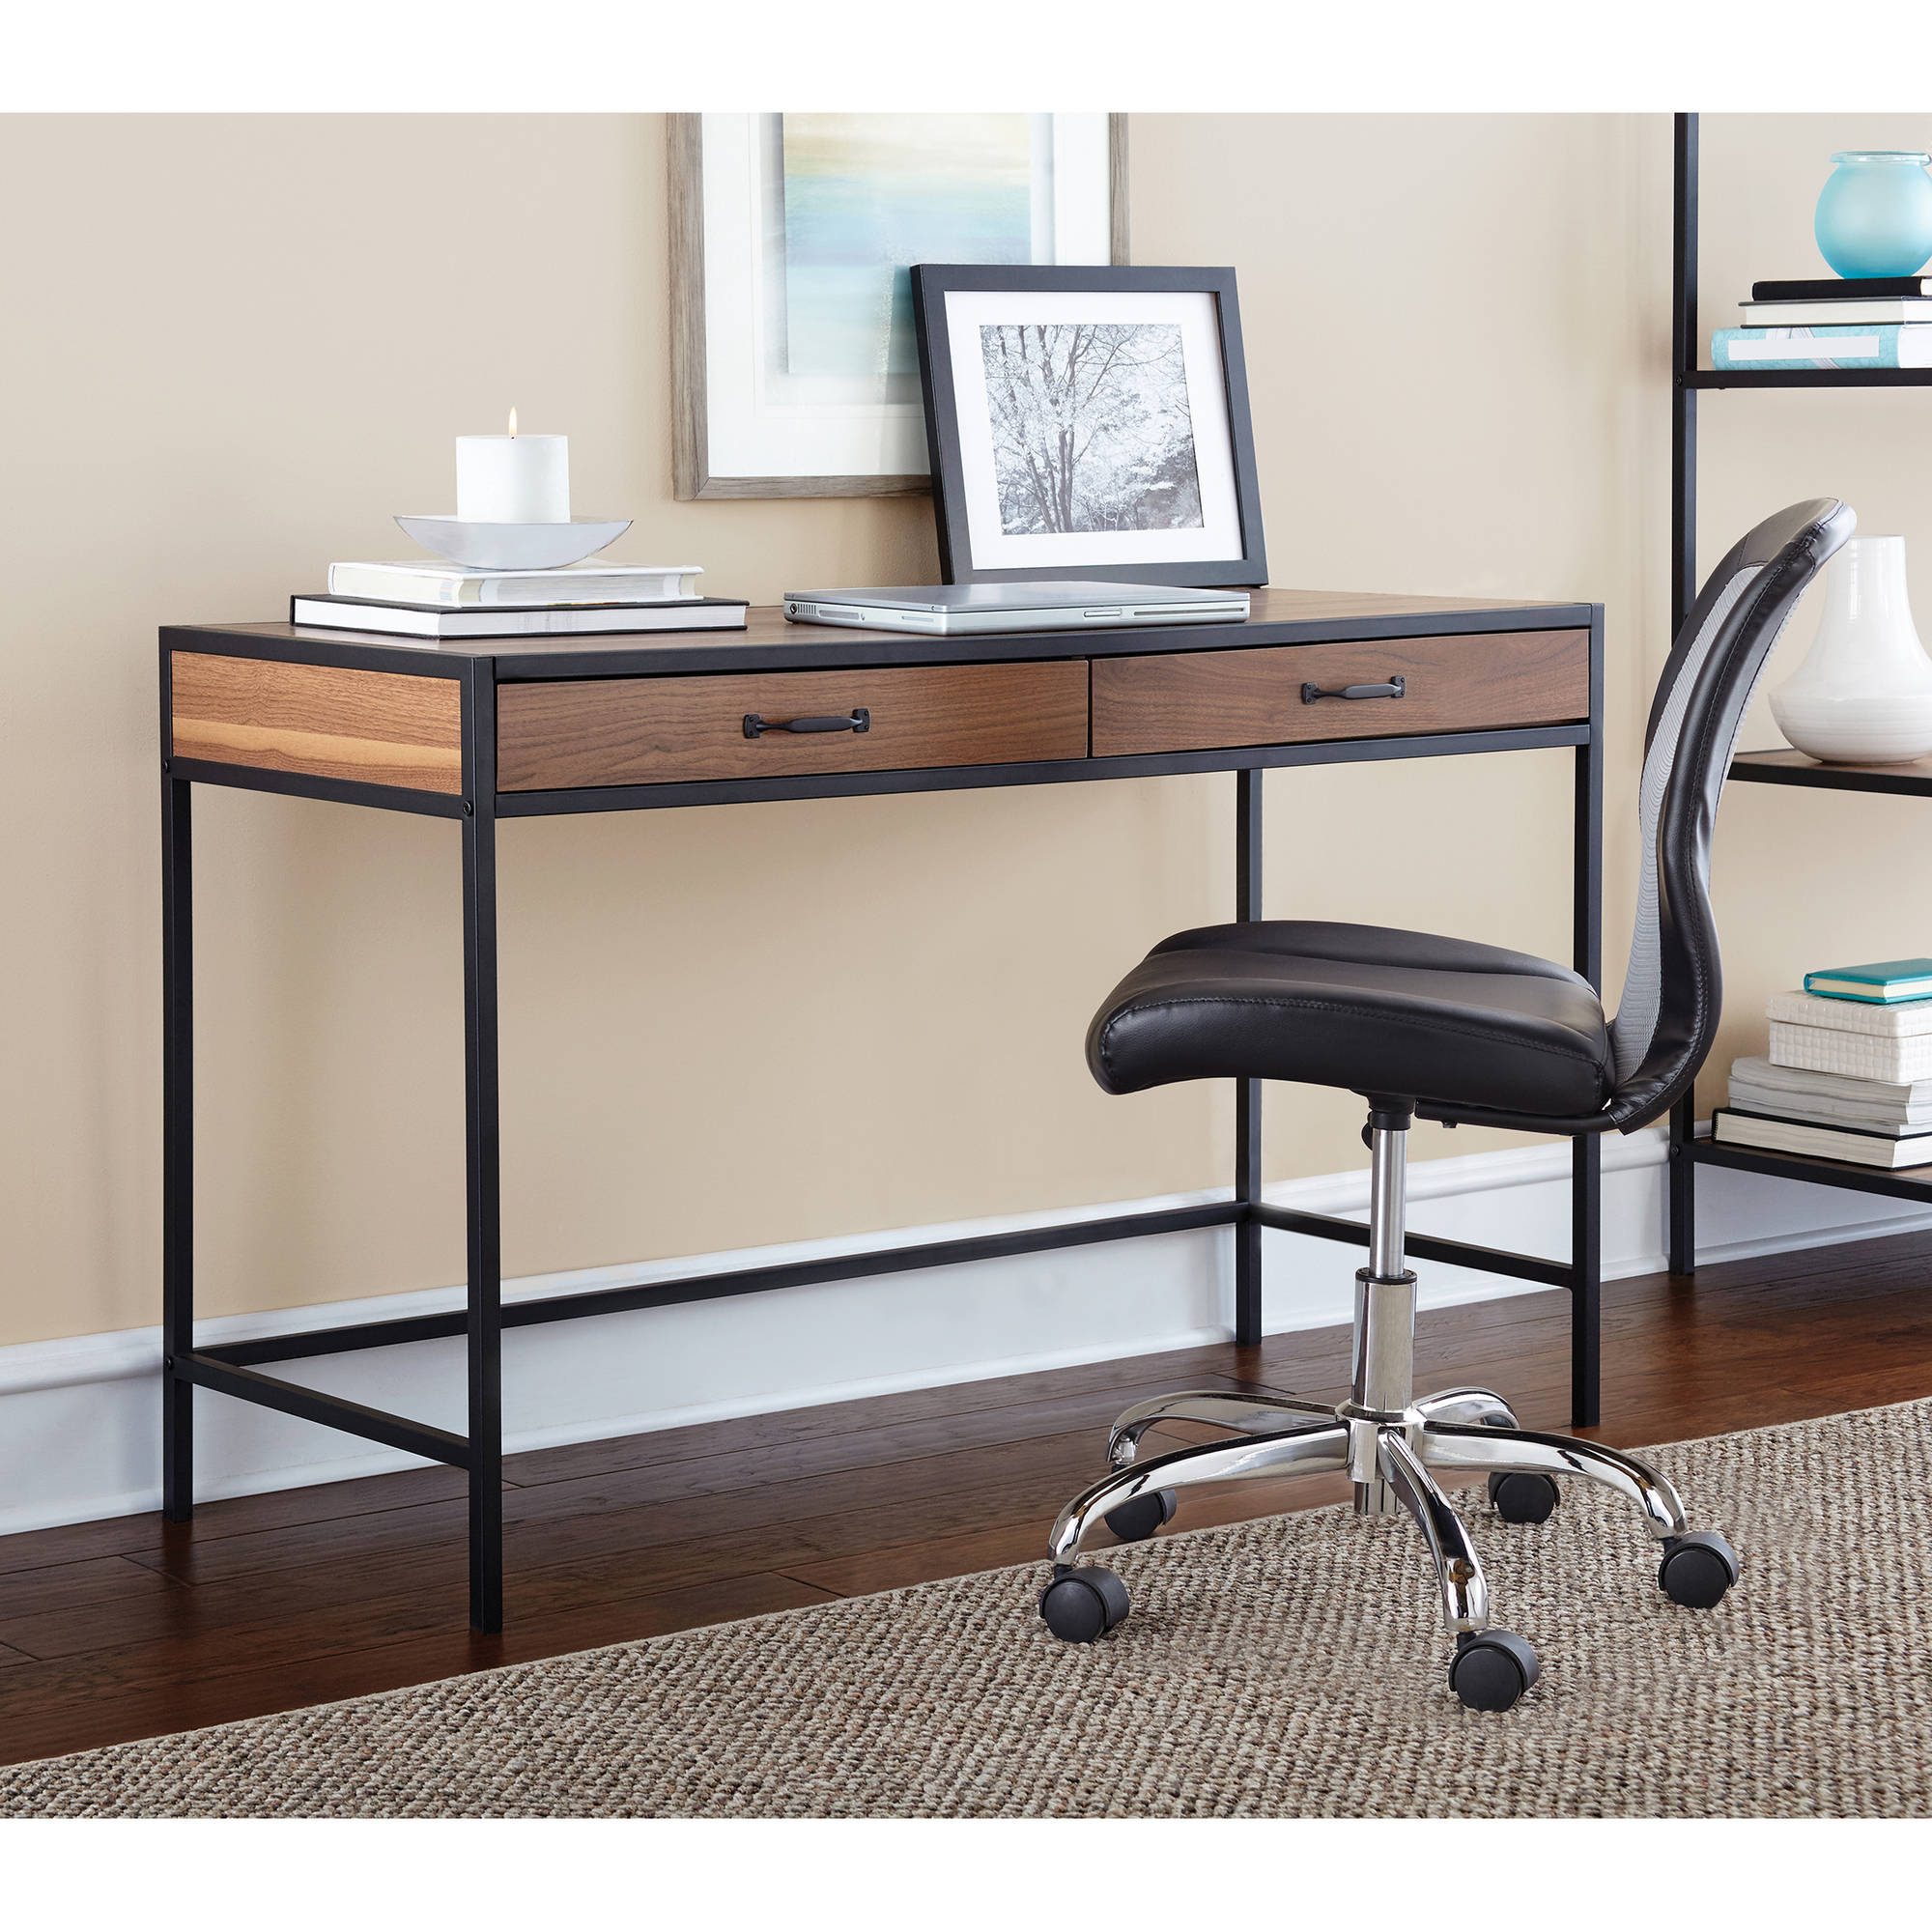 Mainstays Metro Desk with 2 Drawers  Multiple Finishes   Walmart com